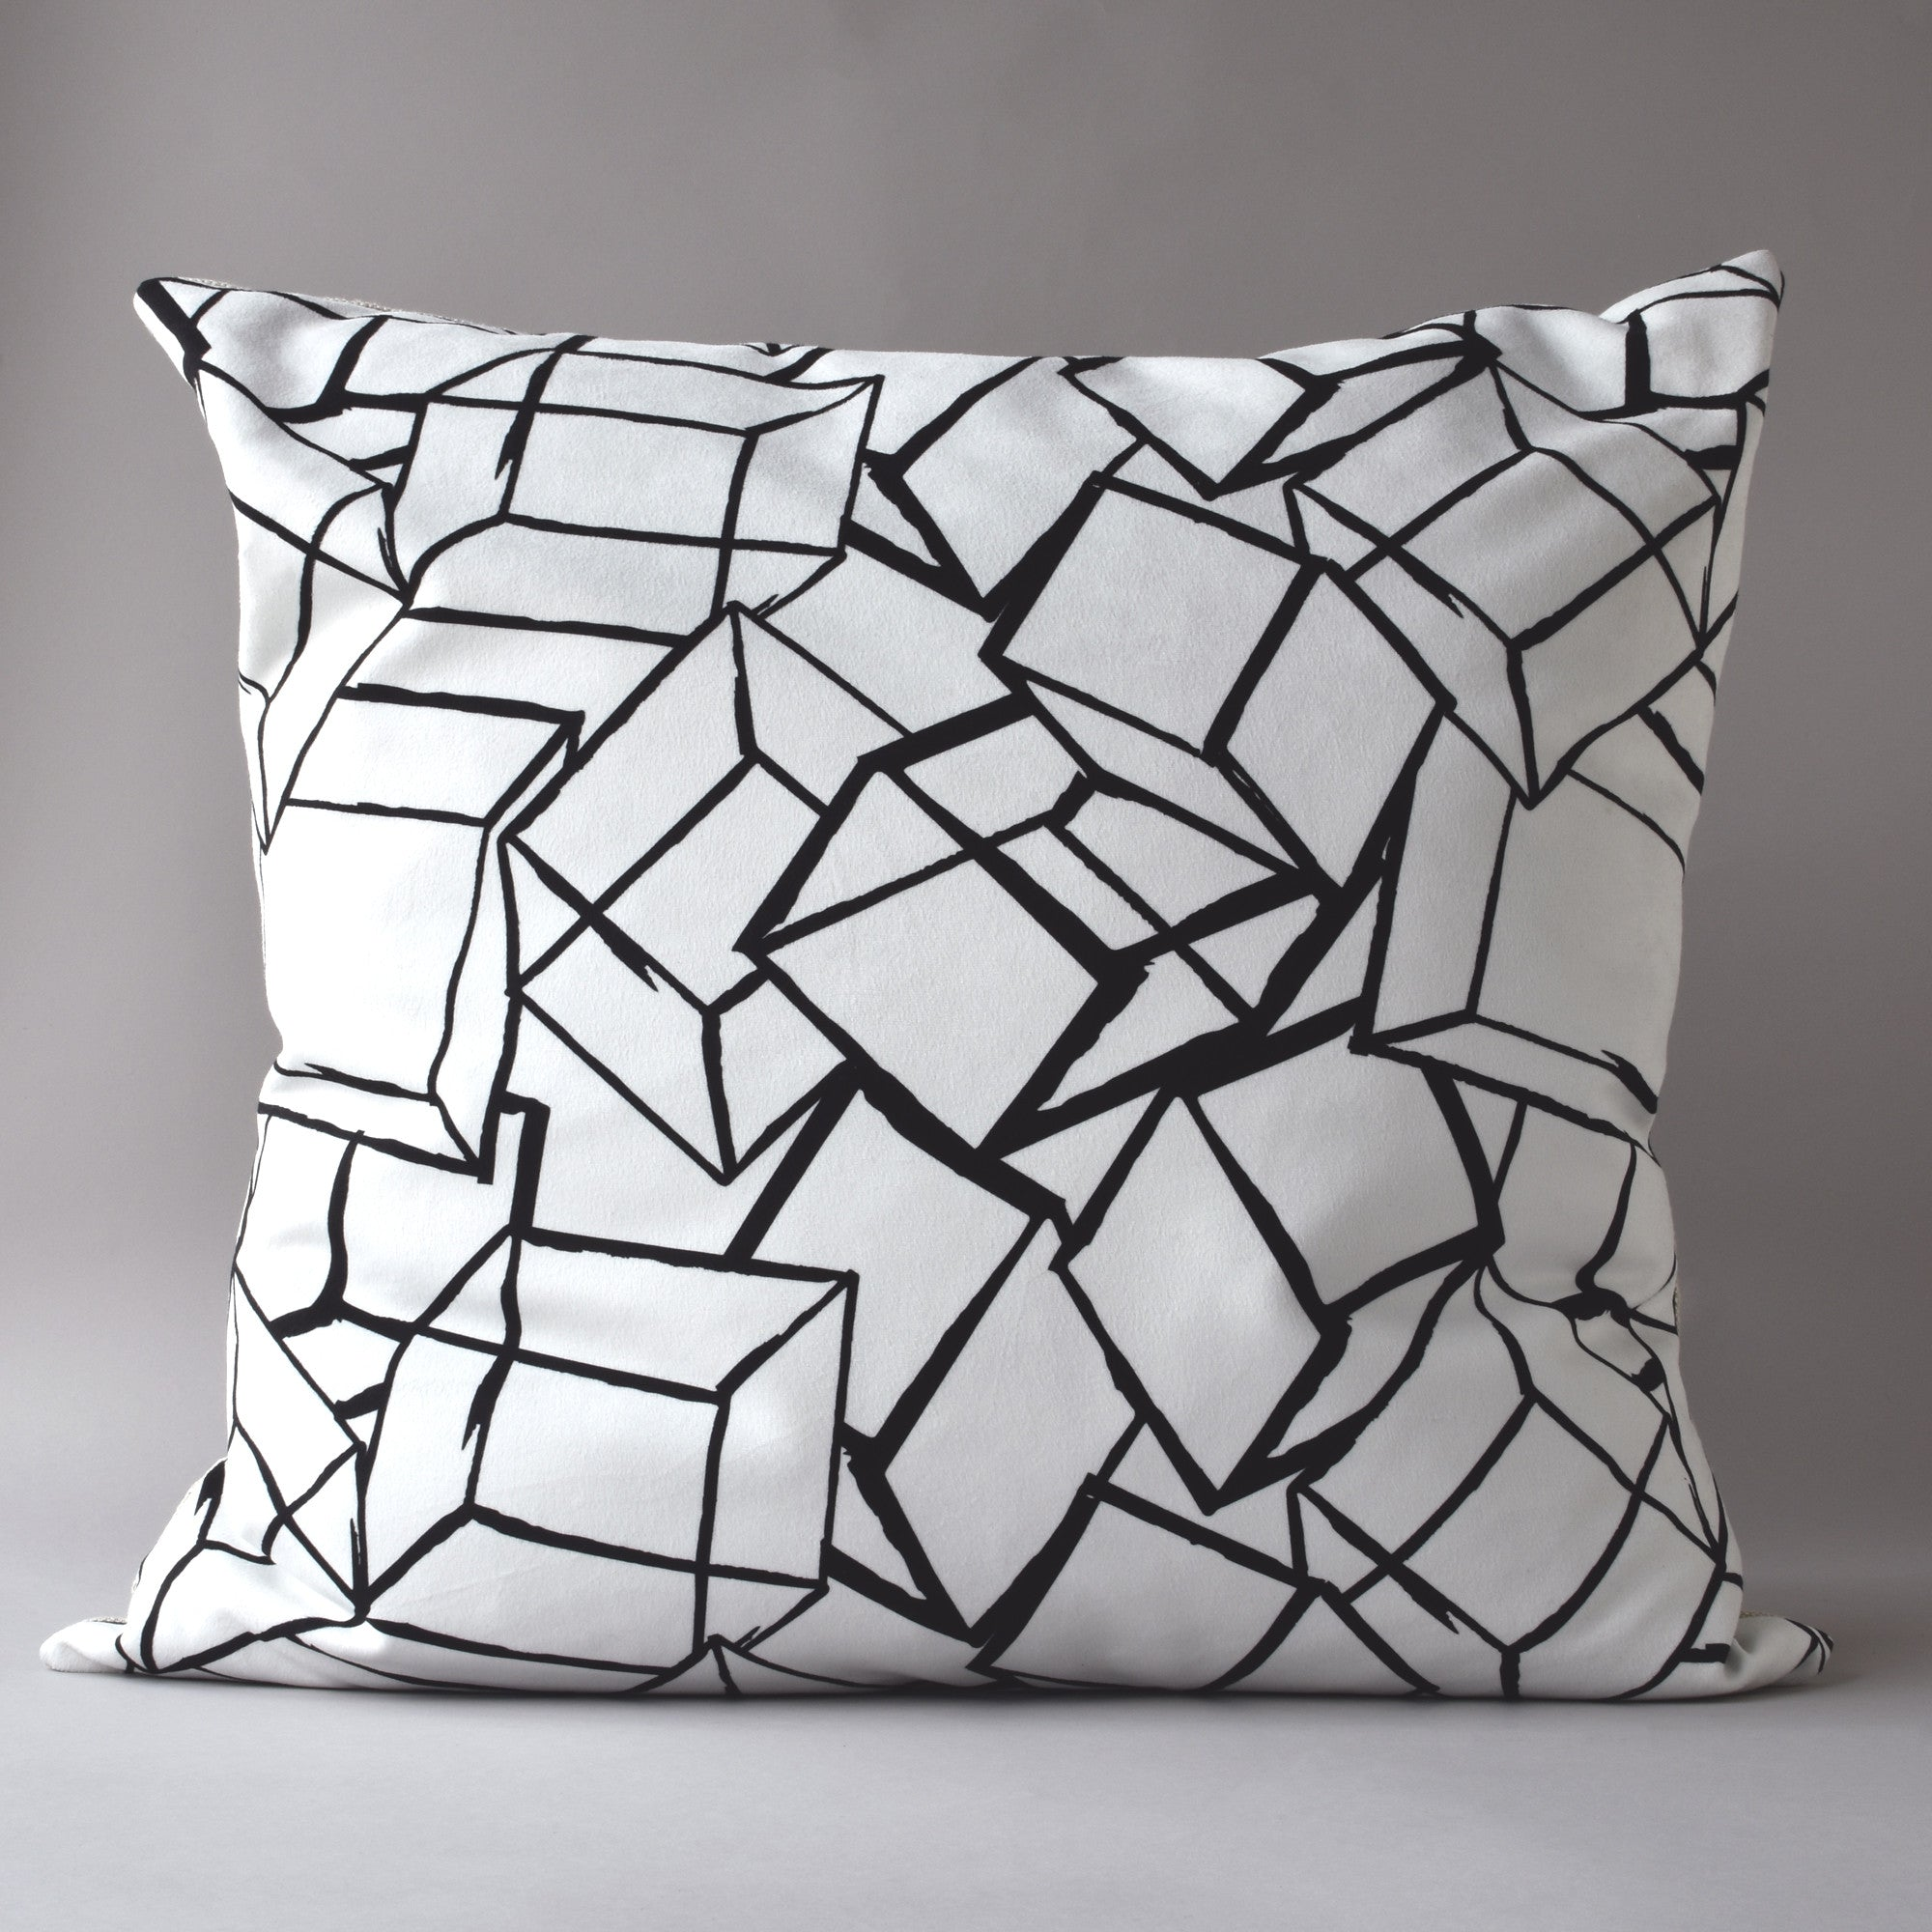 TUMBLING BLOCKS | 26 in sq pillow from the LEXICON collection by ANTIPOD